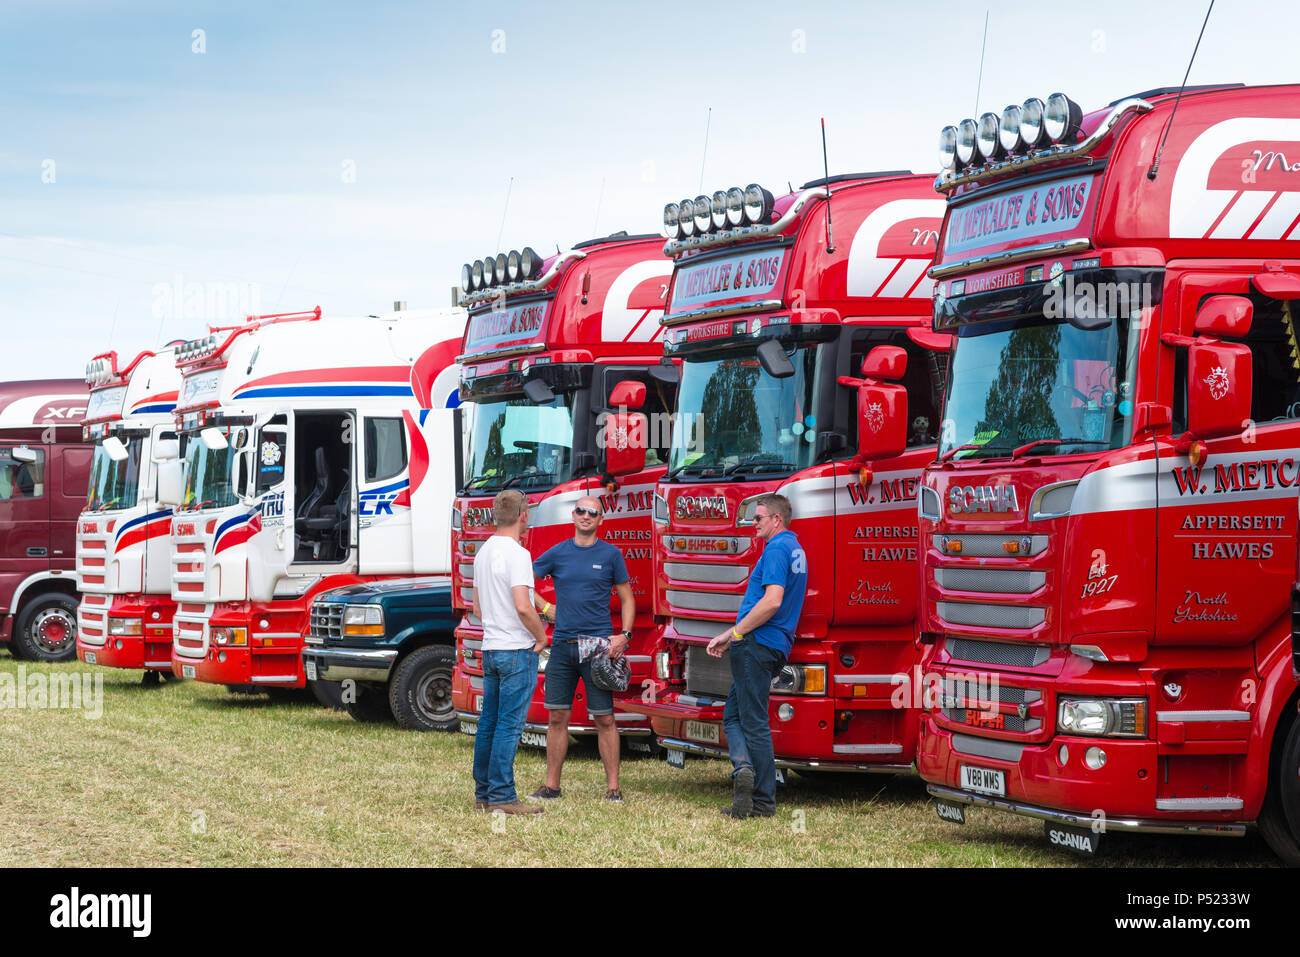 HGV lorries at Thirsk Truck Show - Stock Image